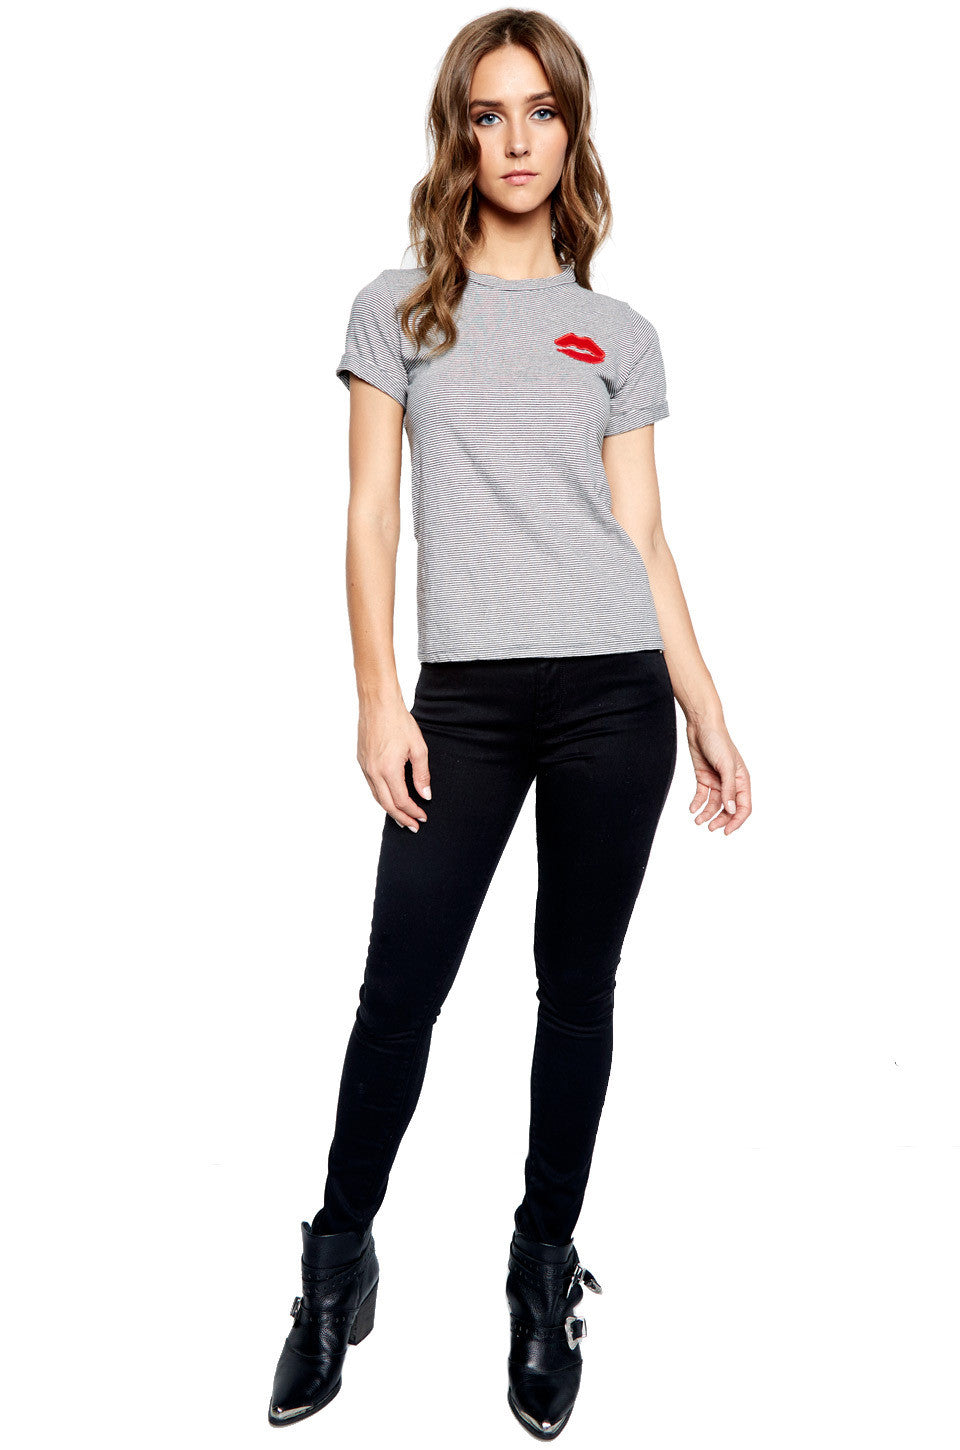 Limp Red Mouth Patch S/S Roll Up Tee - Lauren Moshi - 3